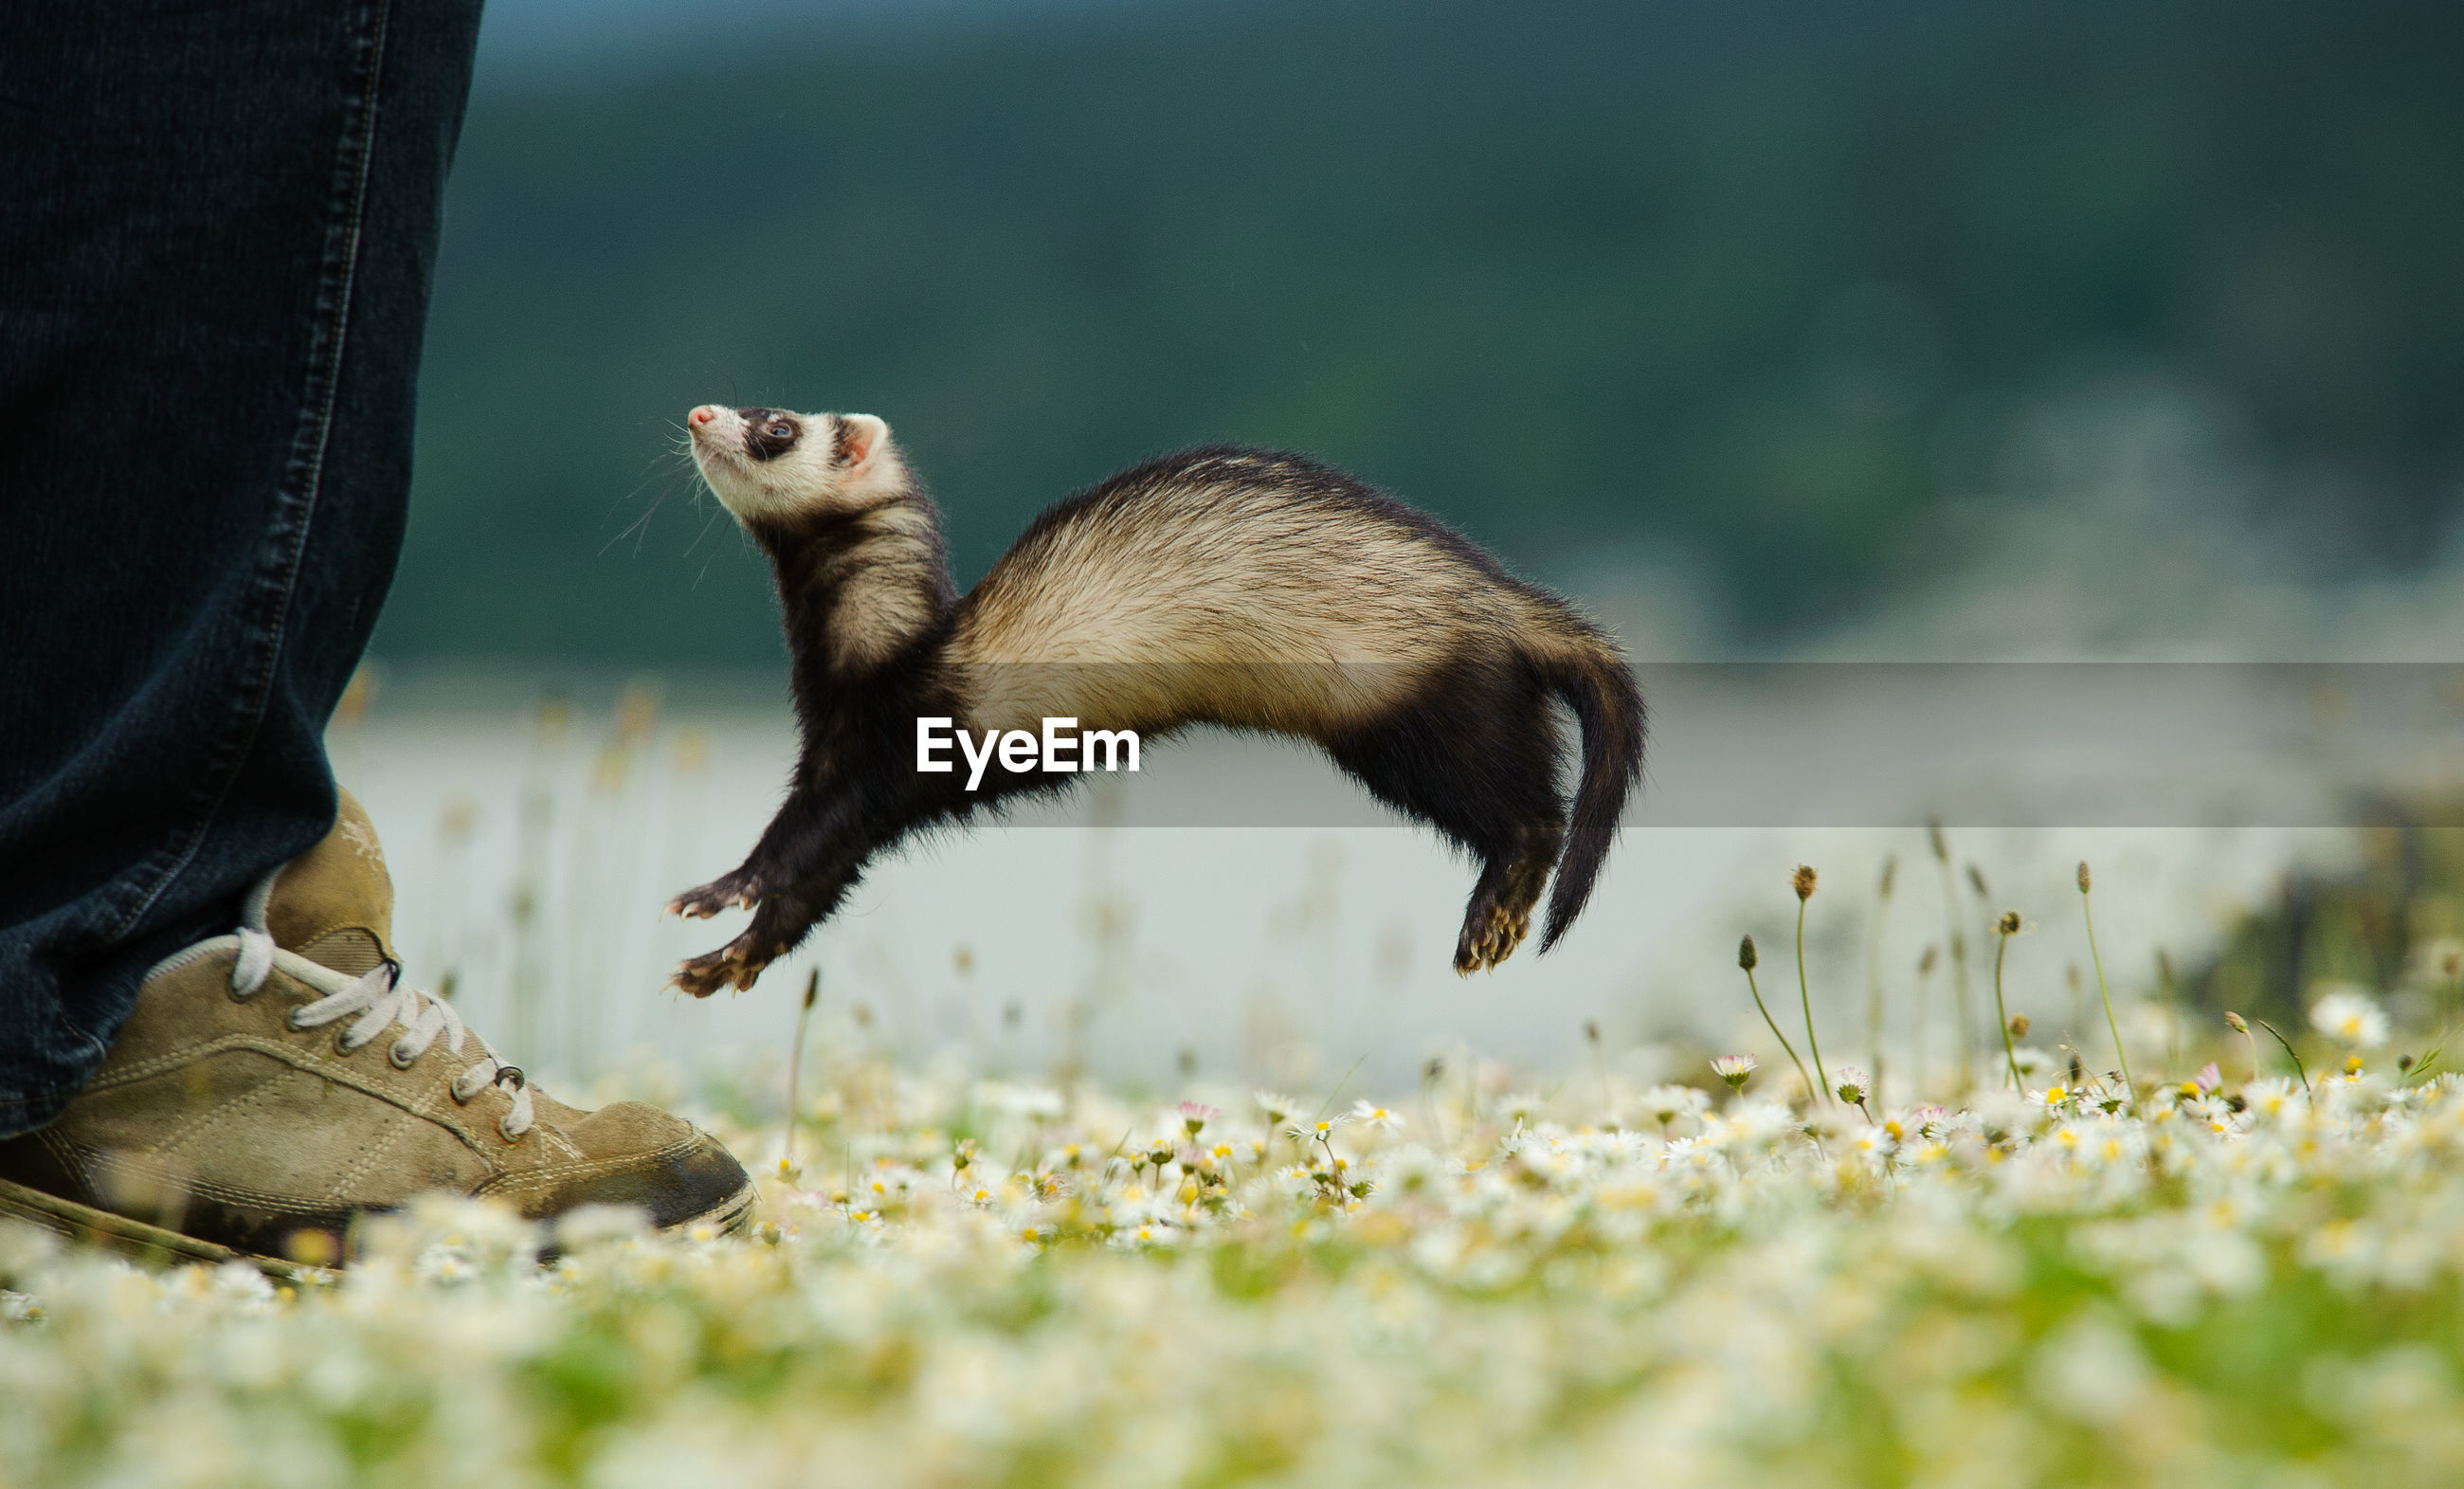 Low angle view of small animal jumping in the air